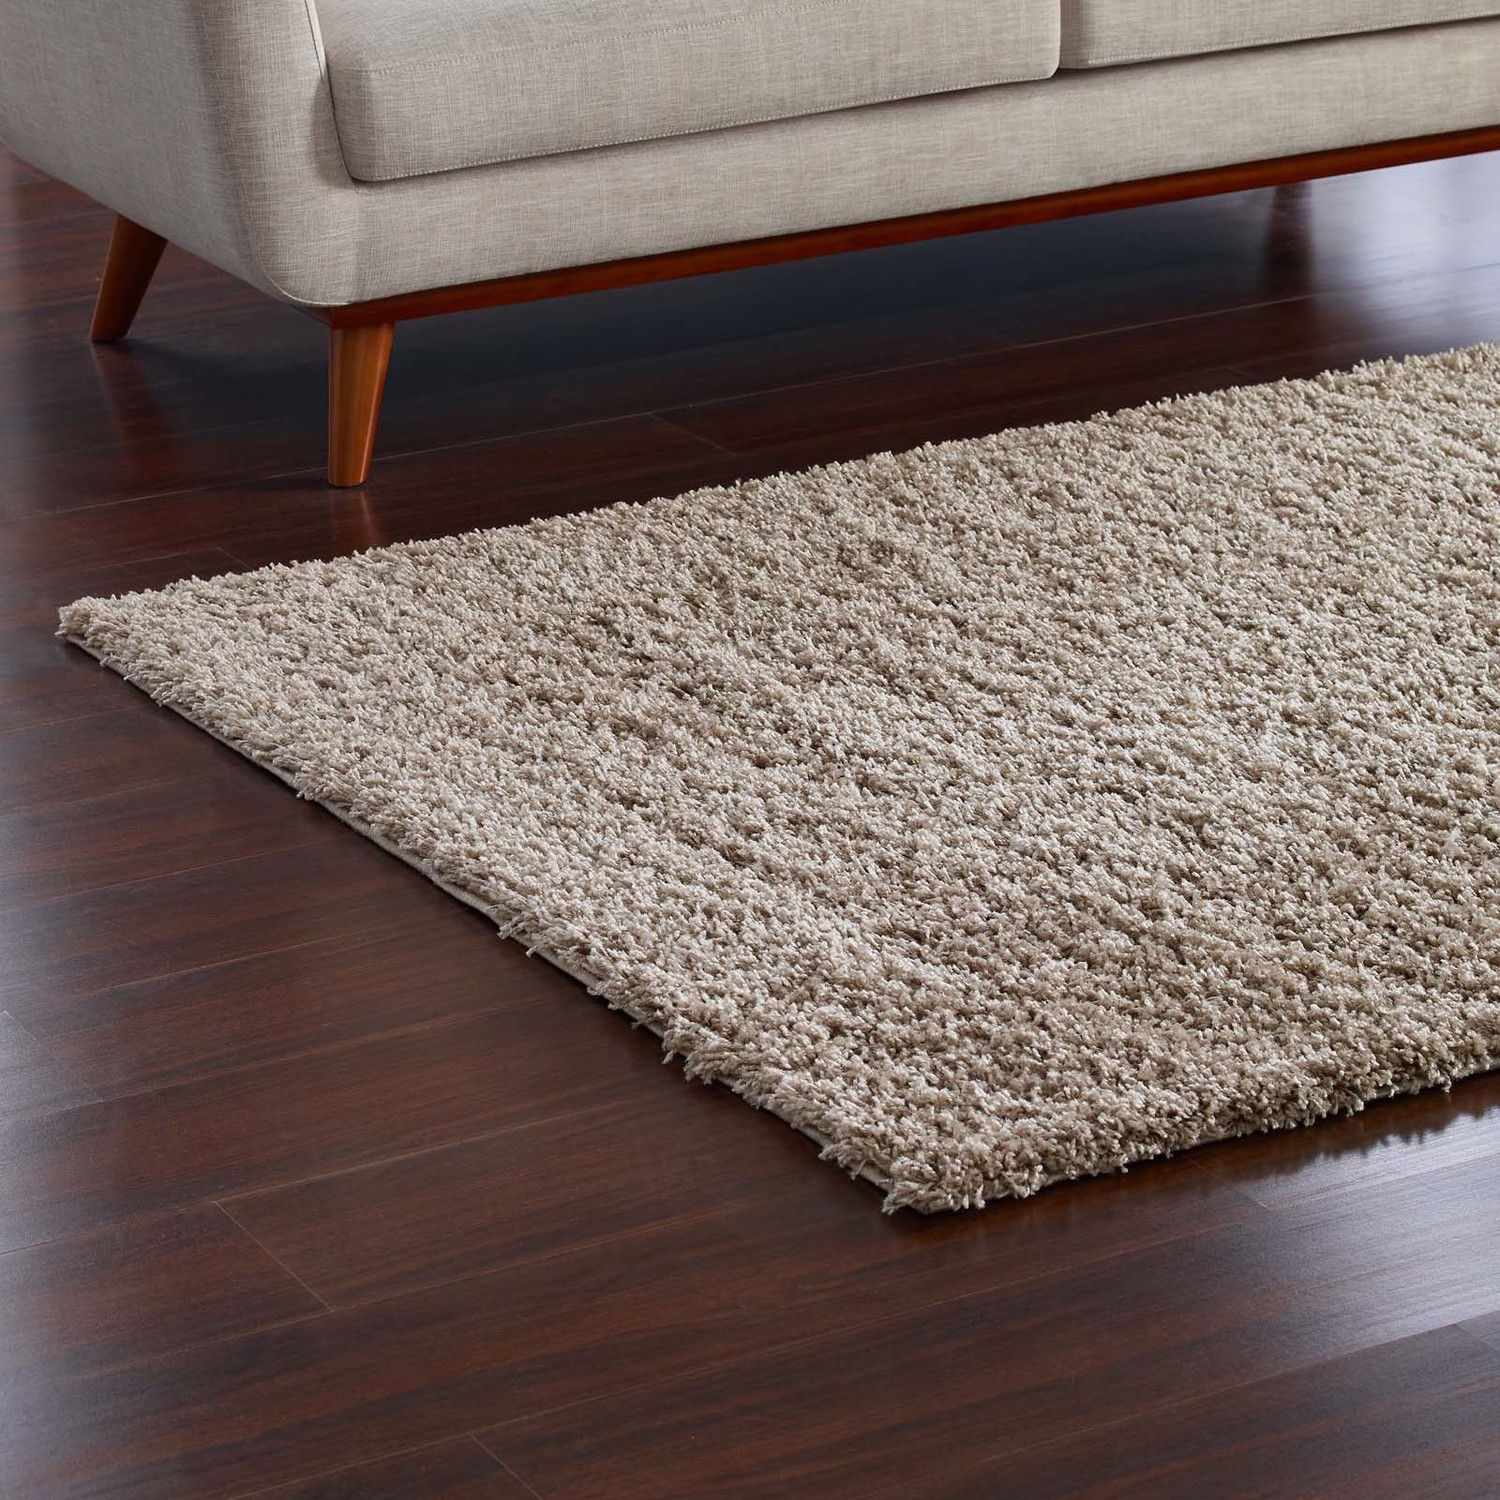 Enyssa Beige Ivory 5x8 Area Rug R 1145f 58 Modway Furniture Area Rugs Comfyco Furniture